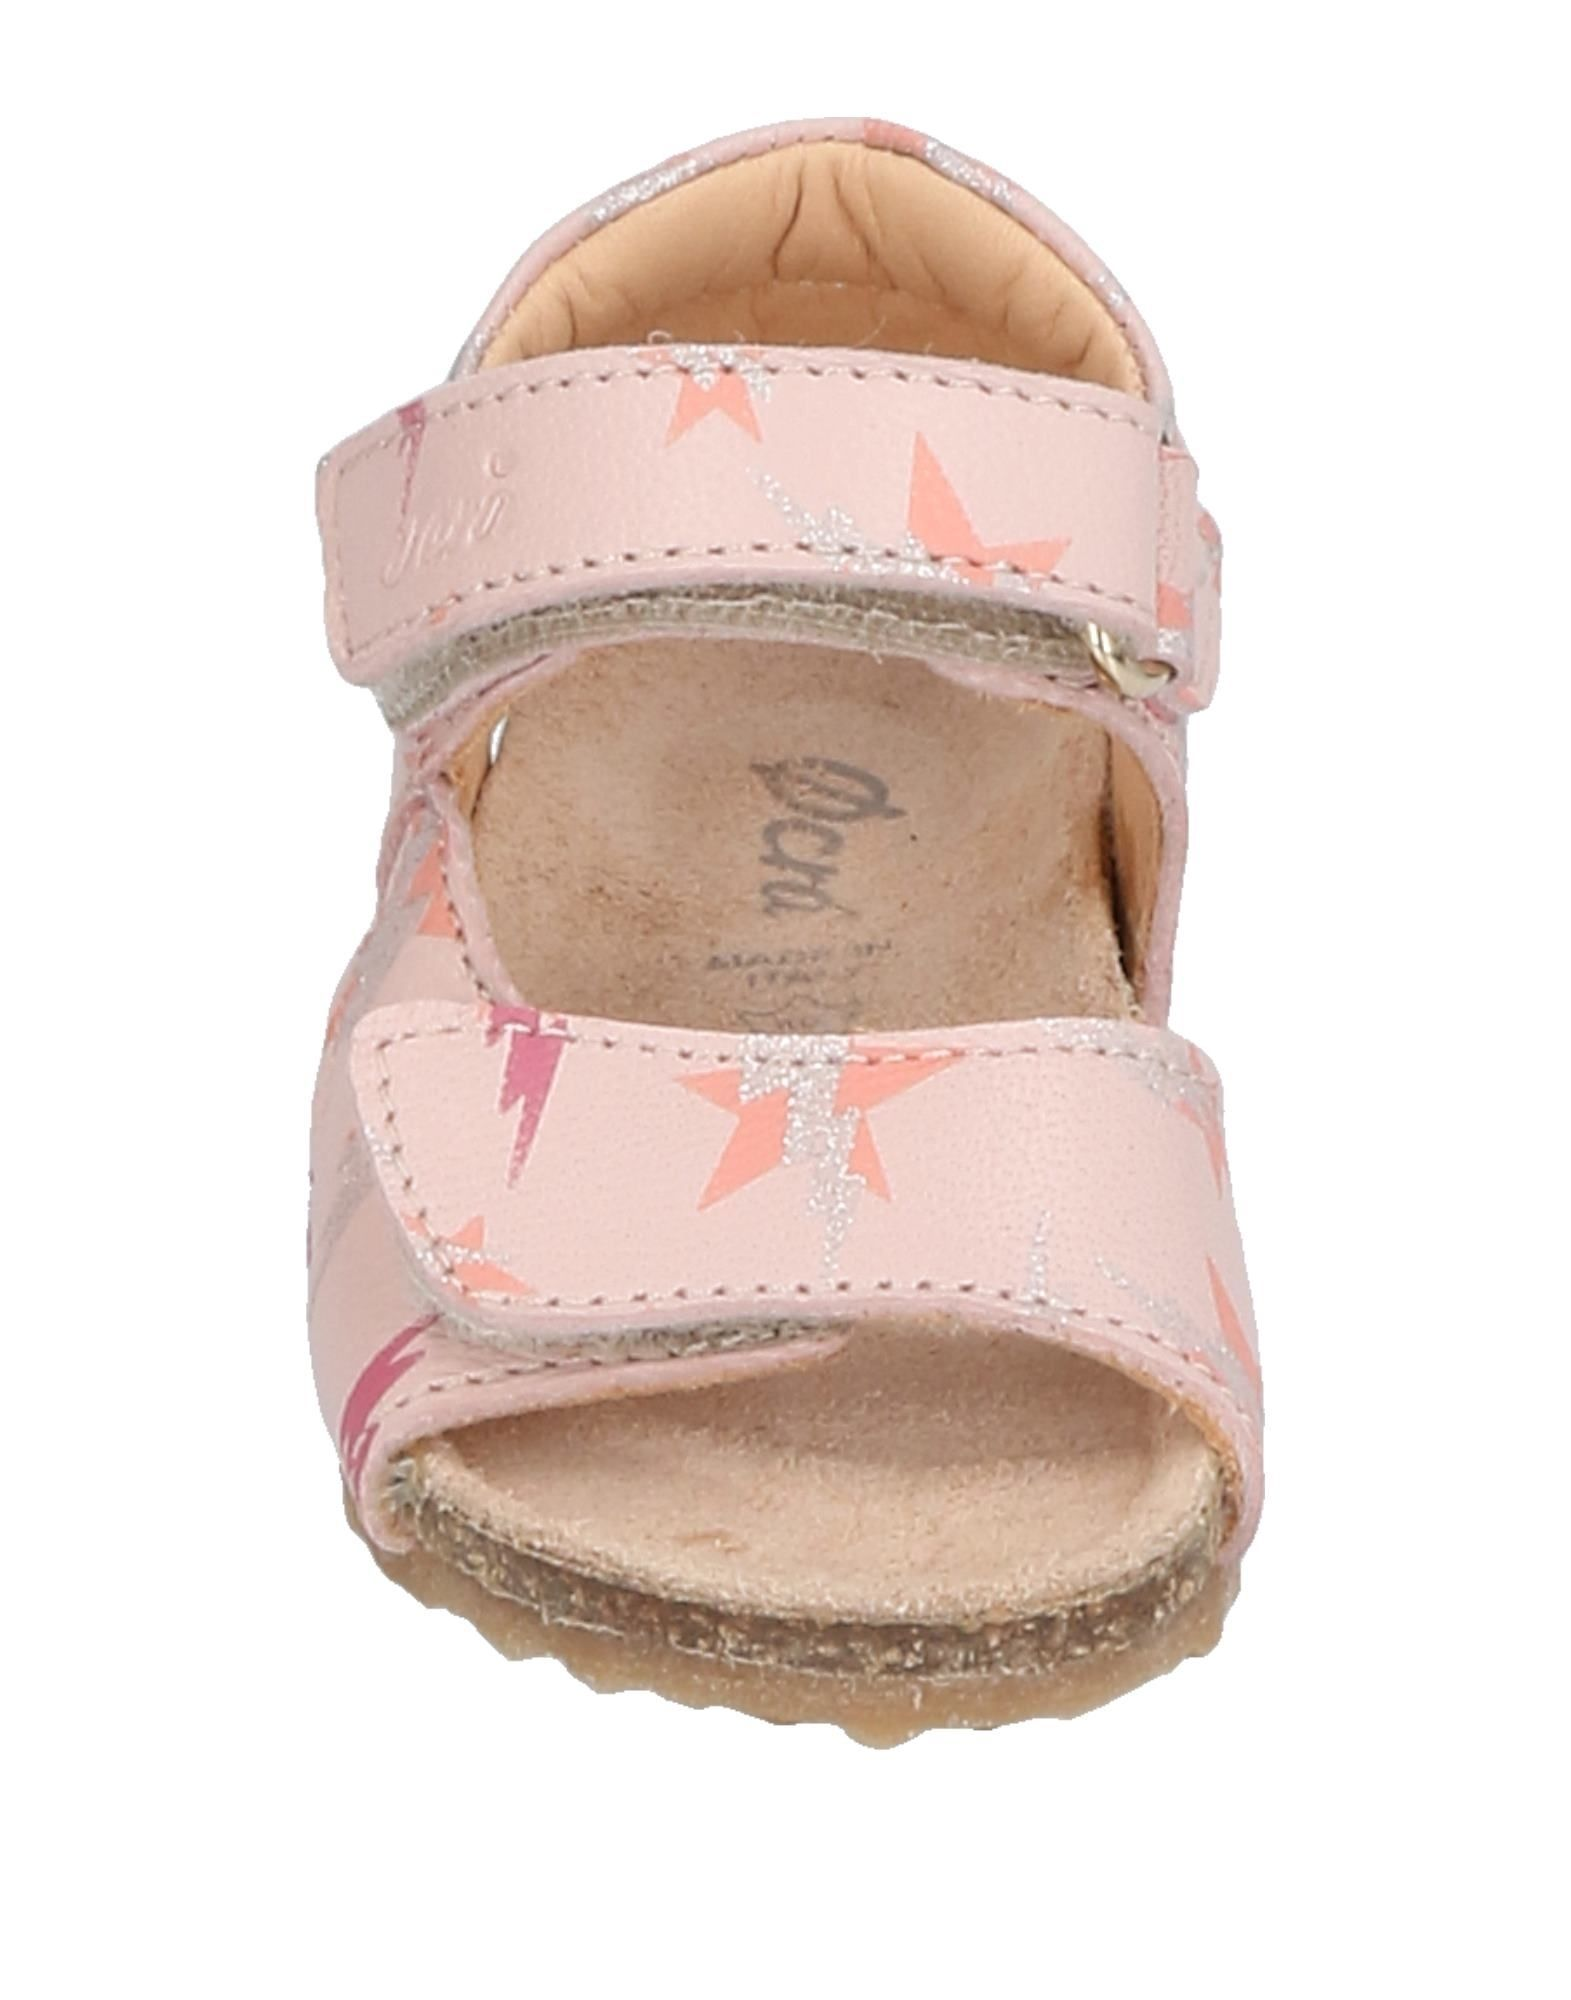 FOOTWEAR Ocra Pink Girl Leather